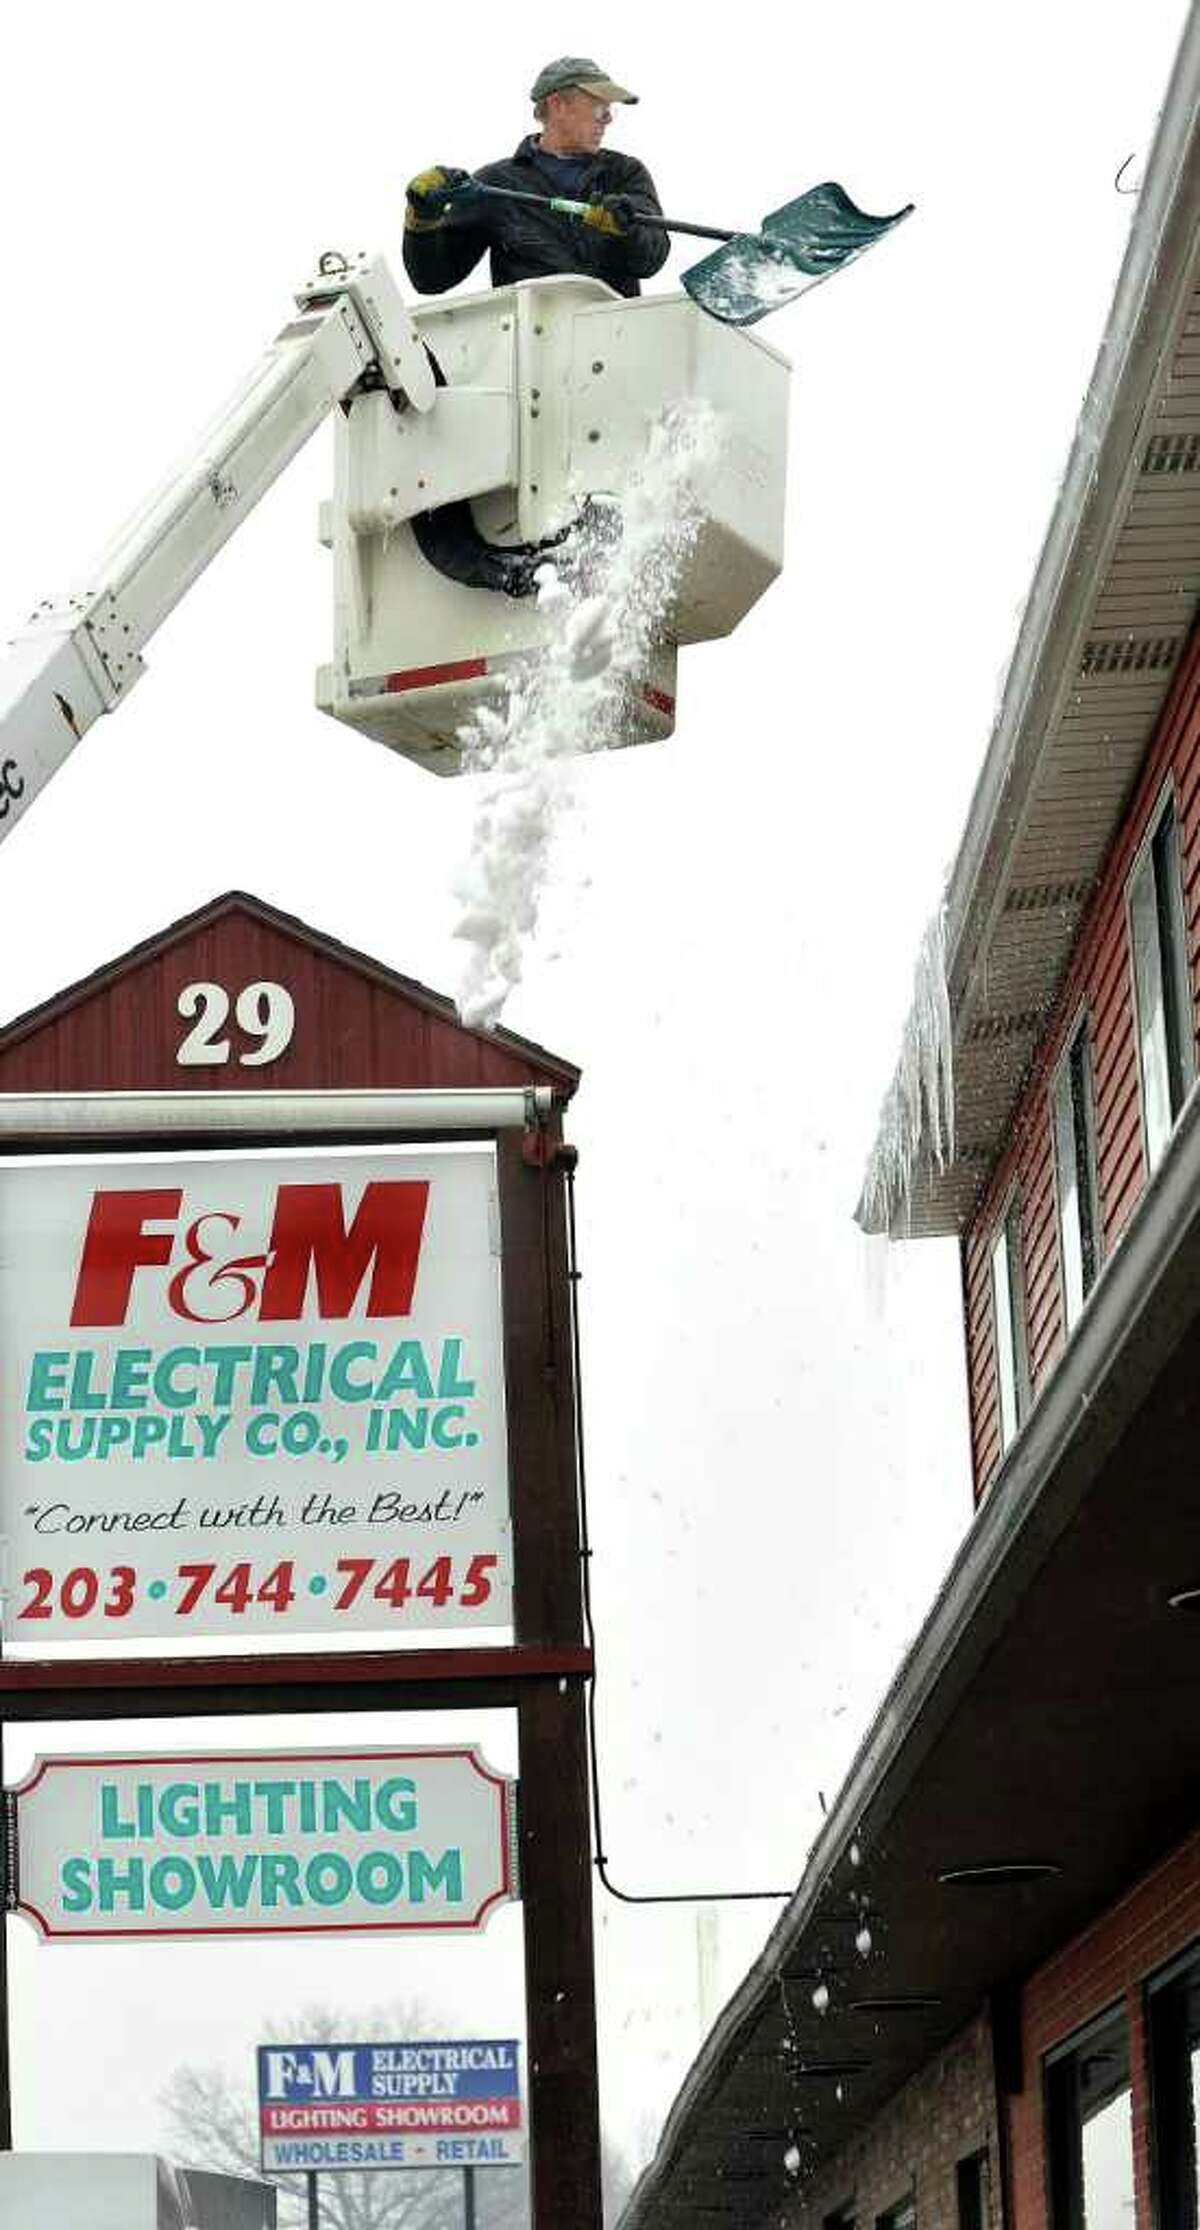 Larry Giddings, of JAR Associates in Danbury, clears snow from the roof of a local business, Saturday, Feb. 5, 2010.